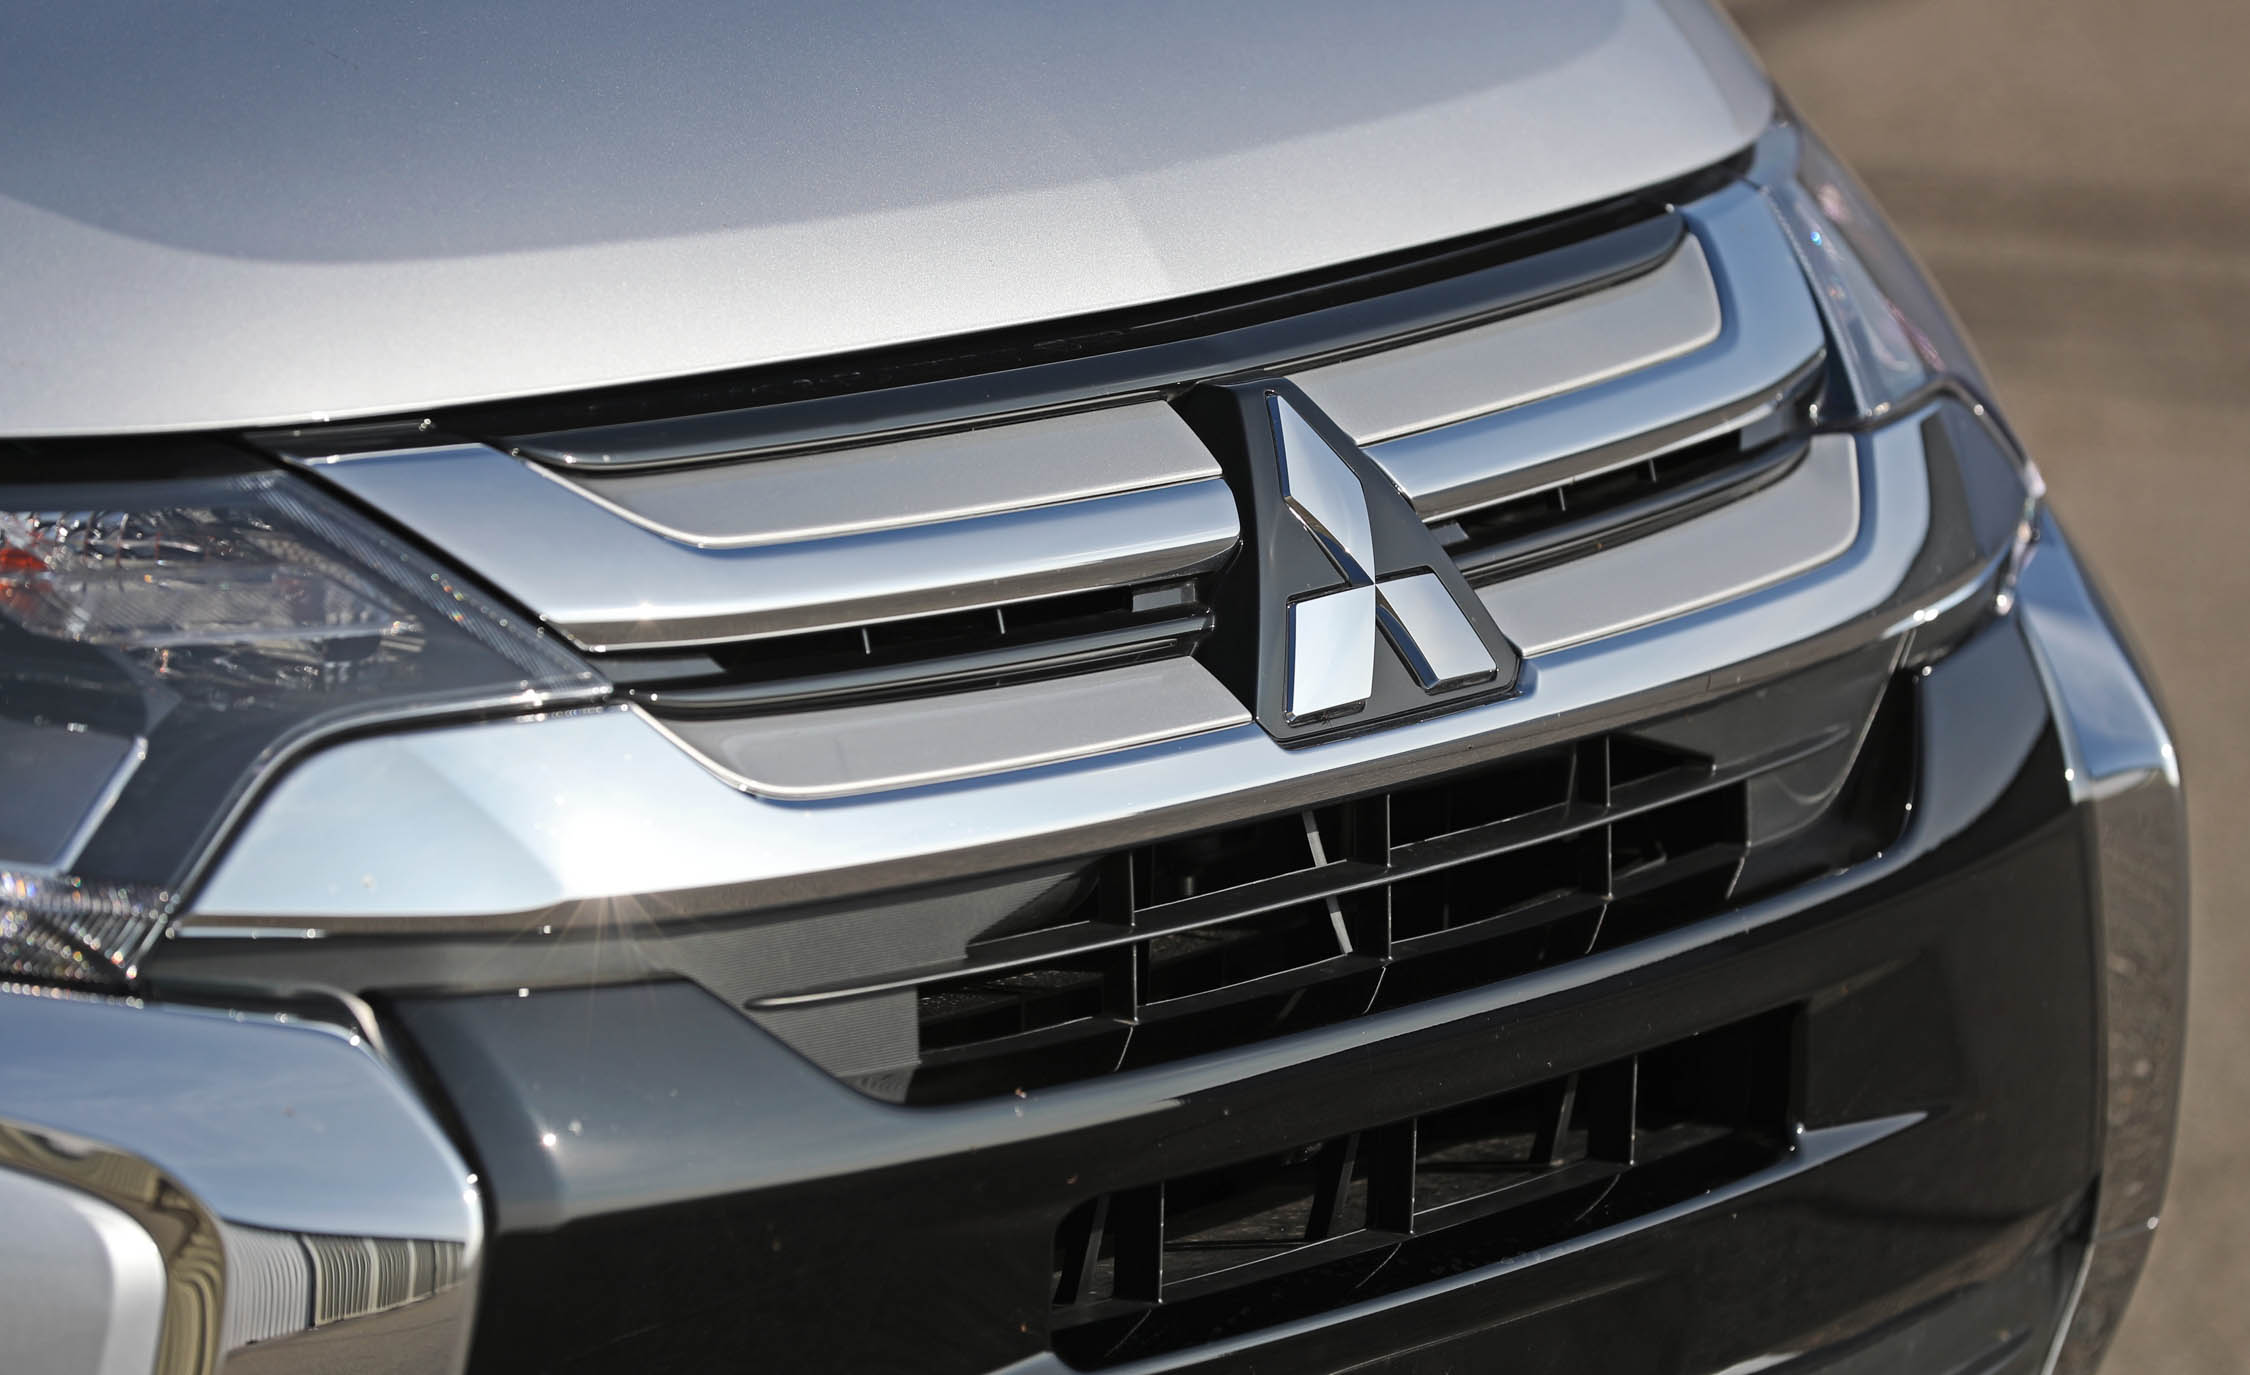 2017 Mitsubishi Outlander Gt Exterior View Grille (View 29 of 34)